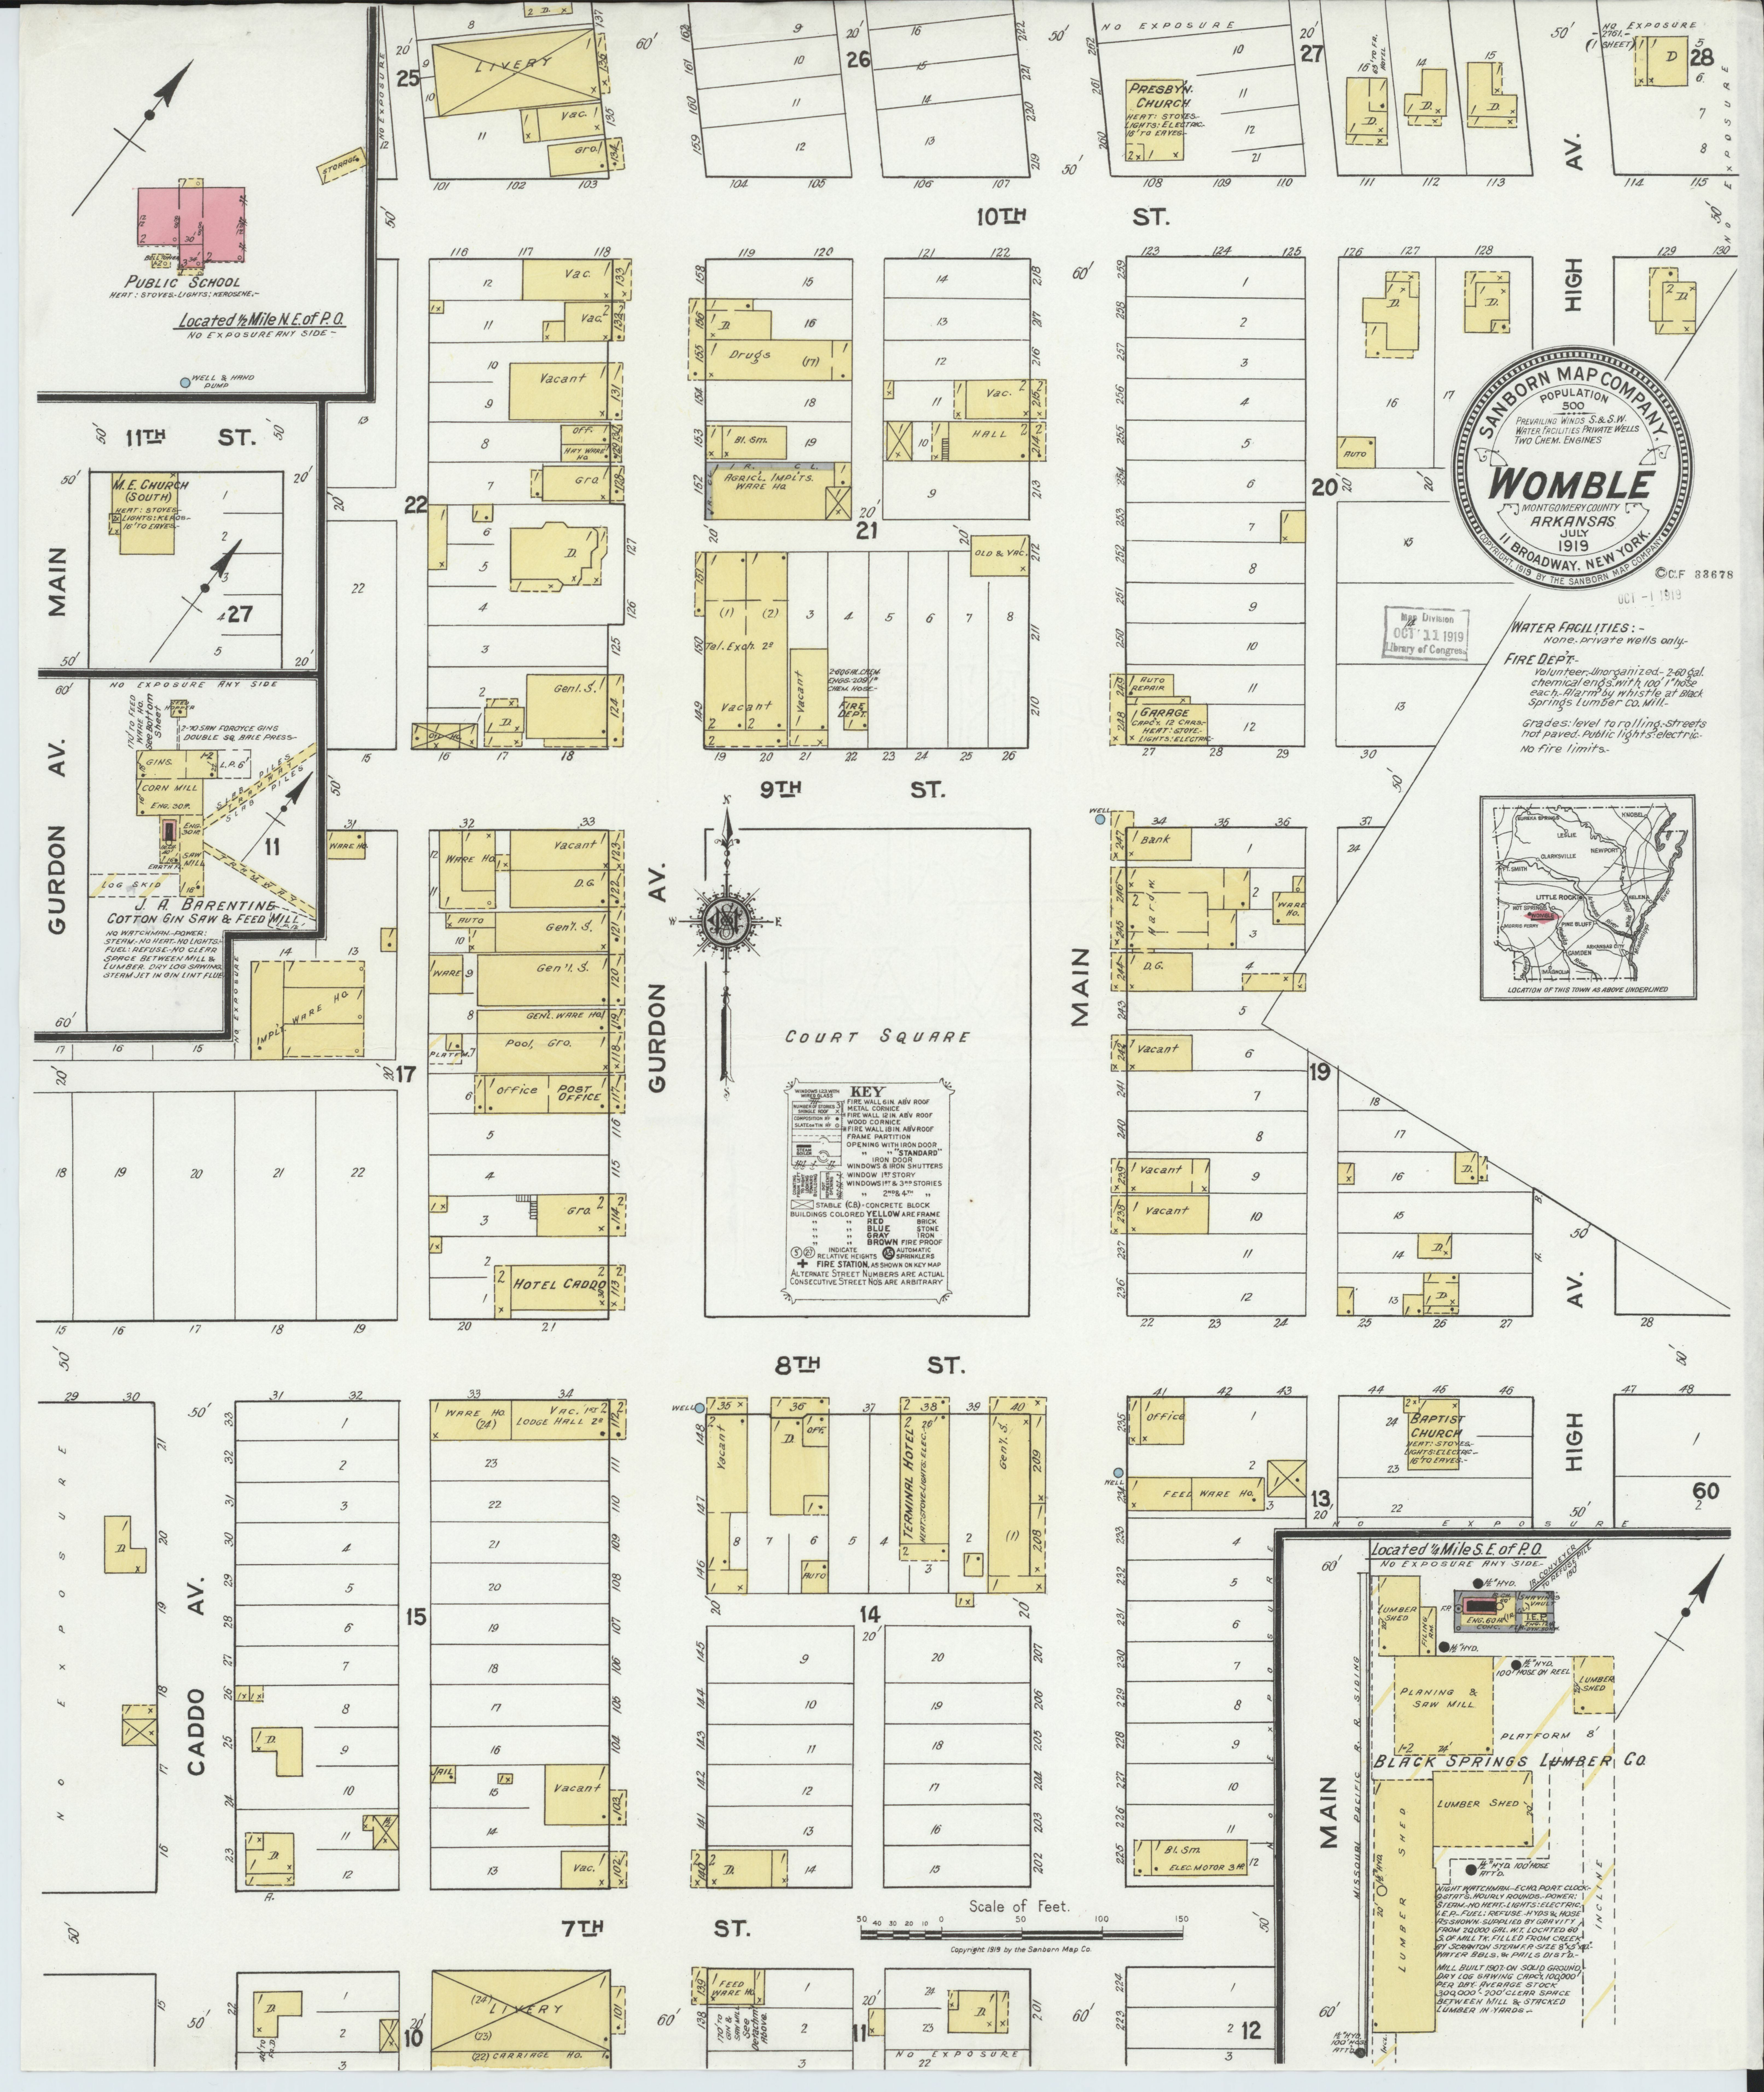 File:Sanborn Fire Insurance Map from Womble, Montgomery ... on map of damascus arkansas, map of washington arkansas, map of wineries in arkansas, map of arkadelphia arkansas, map of arkansas and missouri, map of malvern arkansas, map of all cities in arkansas, map of buffalo river arkansas, map of texarkana arkansas, map of texas and arkansas, map of montgomery pa, towns in polk county arkansas, map of washington county il, maps of creeks in arkansas, map of rogers arkansas, map of east end arkansas, map of mount ida arkansas, map of perryville arkansas, map of oak grove arkansas, detailed map of arkansas,